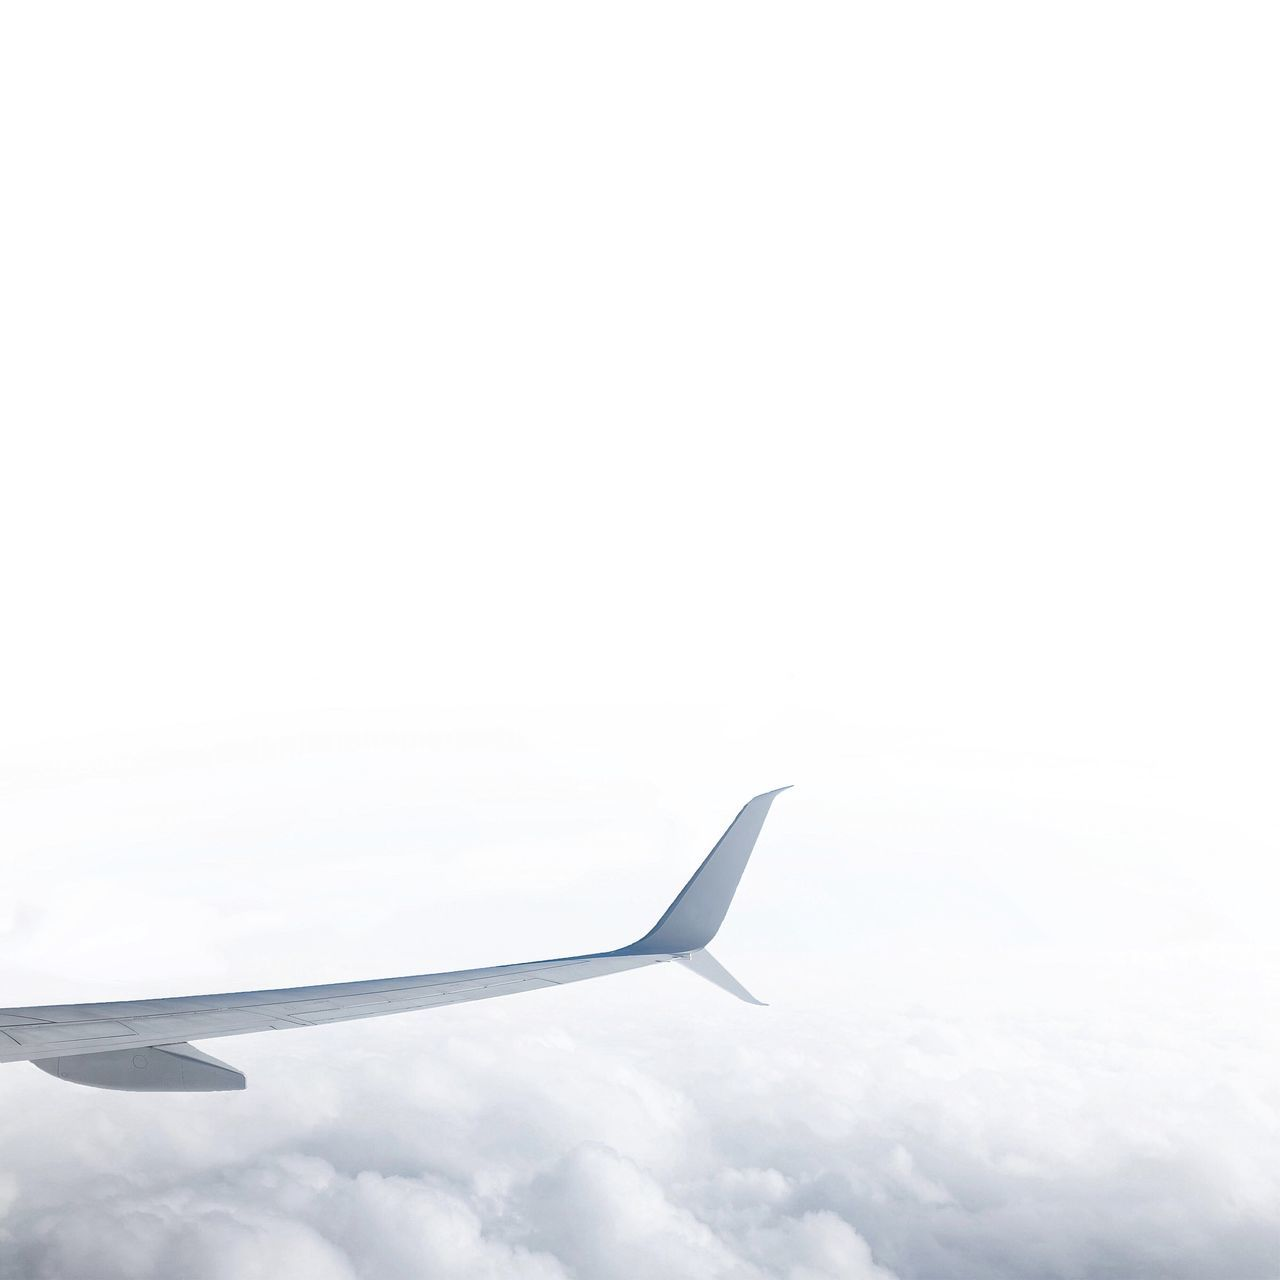 Airplane Wing Over Sea Of Clouds